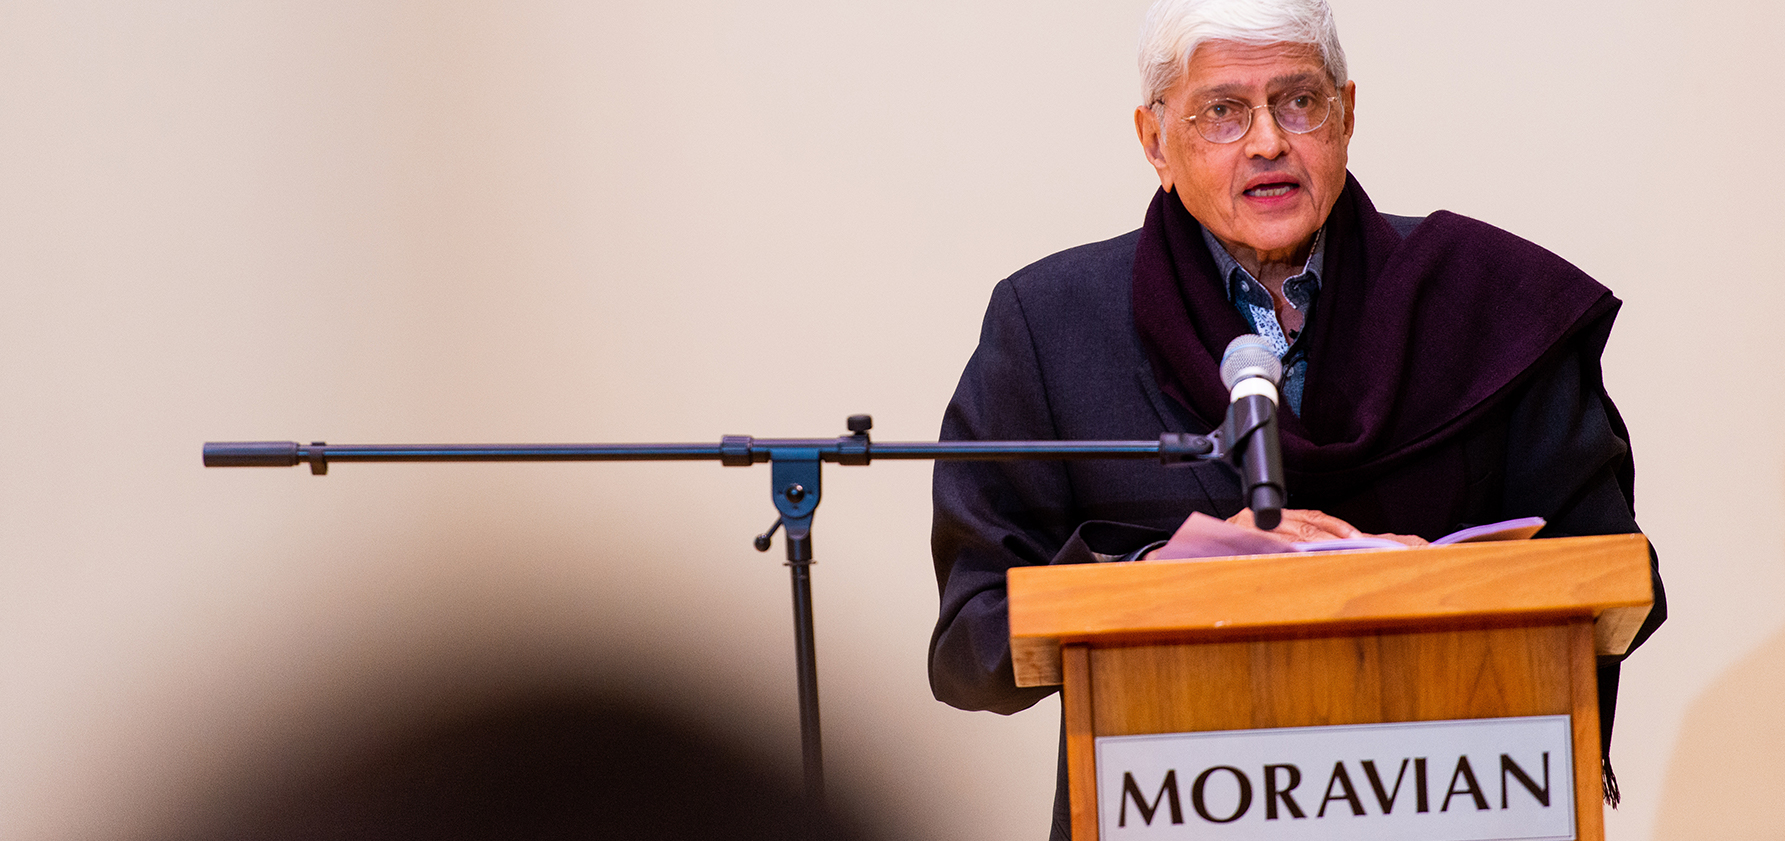 Gopalkrishna Gandhi gives a lecture at Moravian College